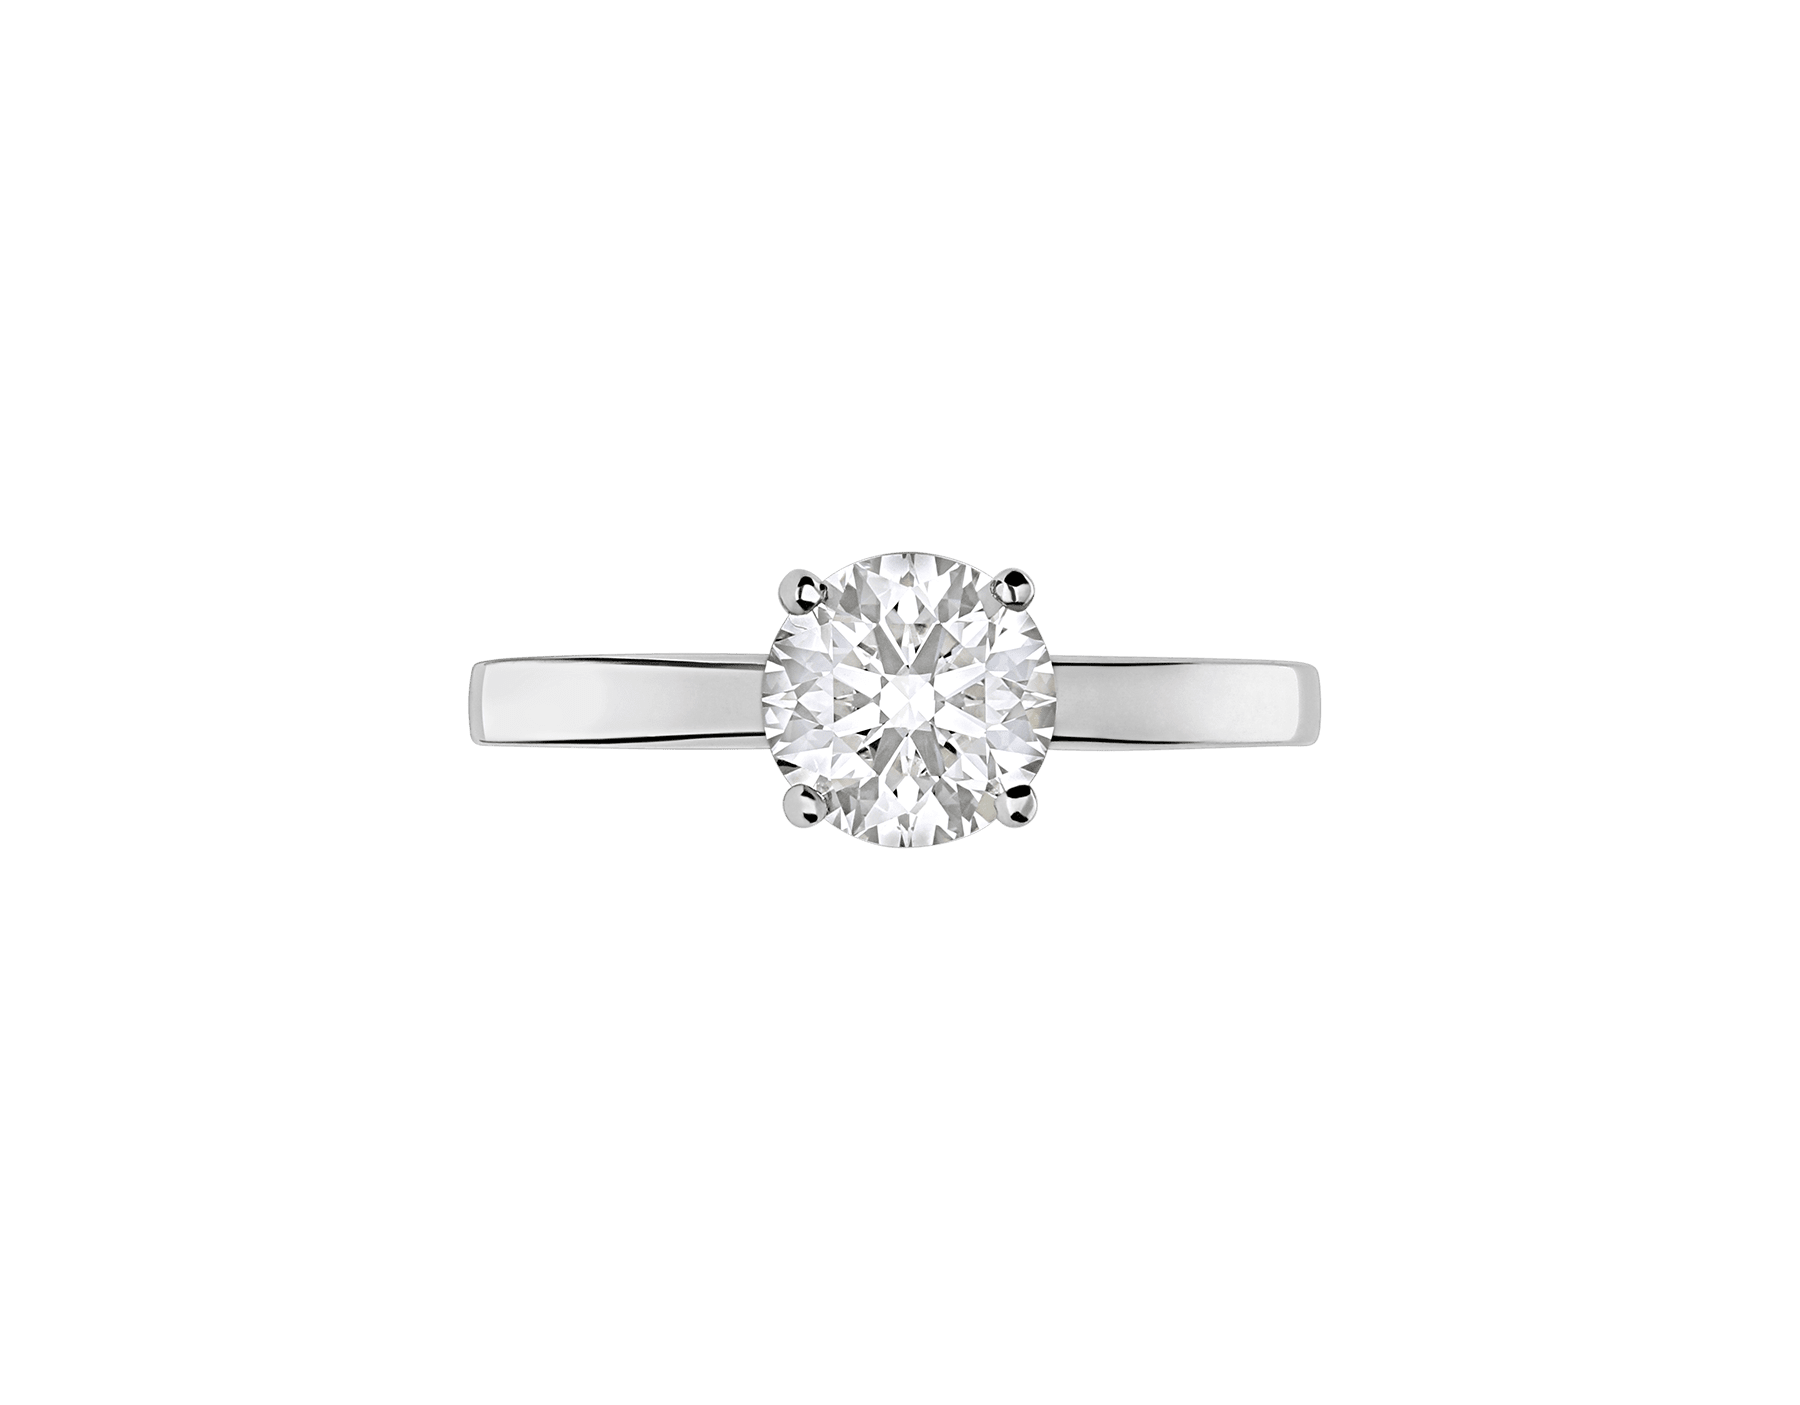 Griffe solitaire ring in platinum with round brilliant cut diamond AN201215 image 3